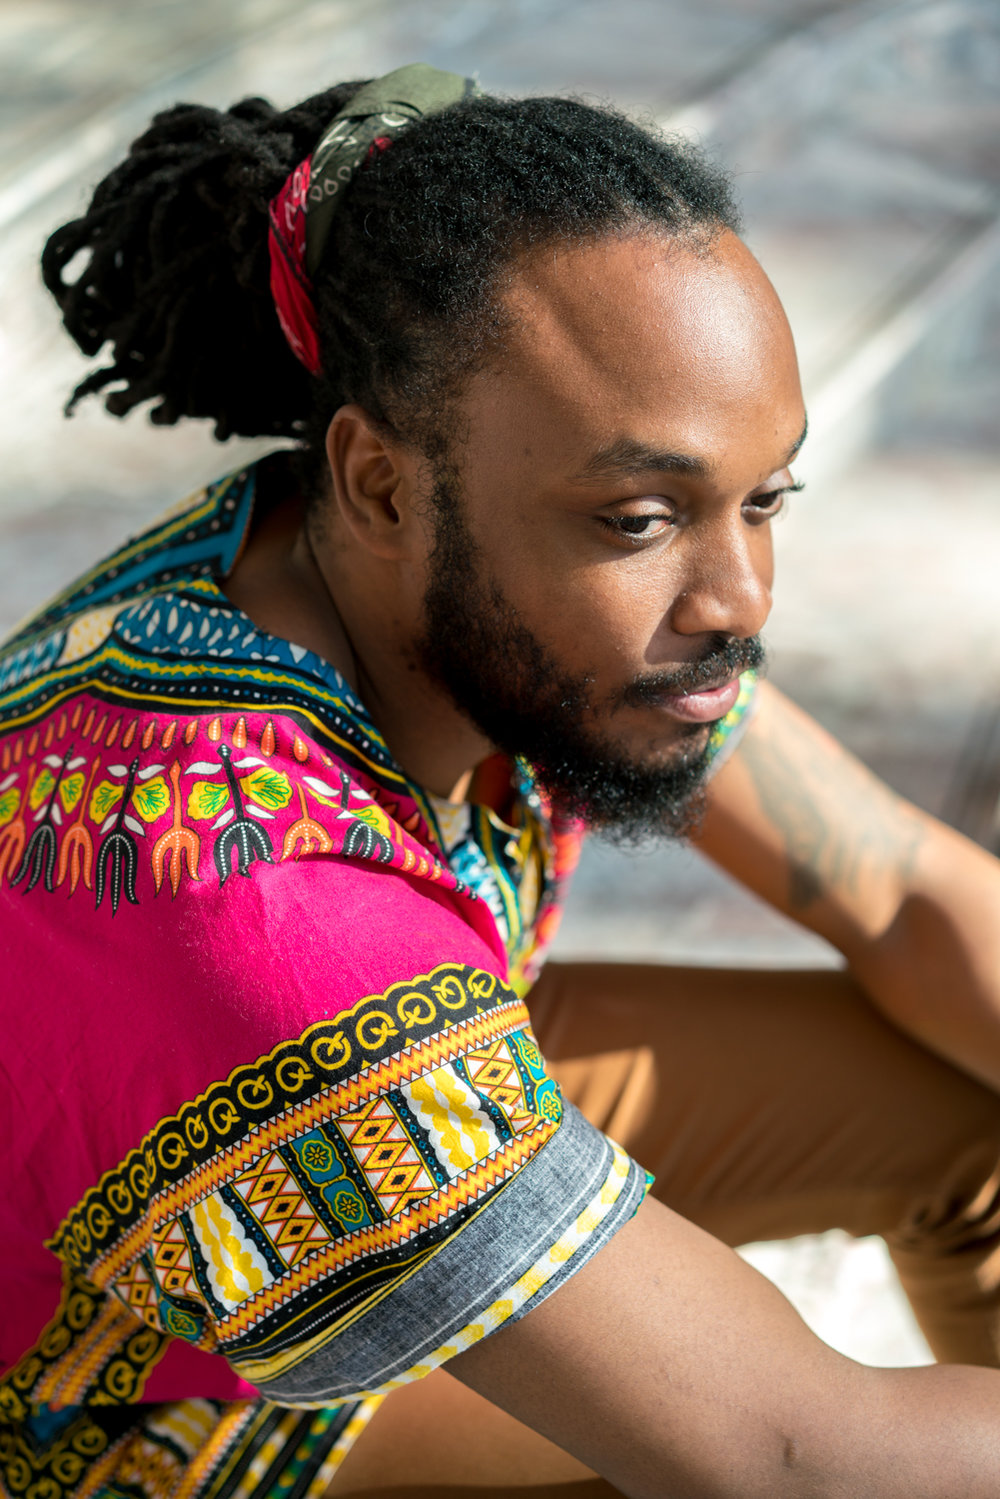 scienze_musical_artist.jpg